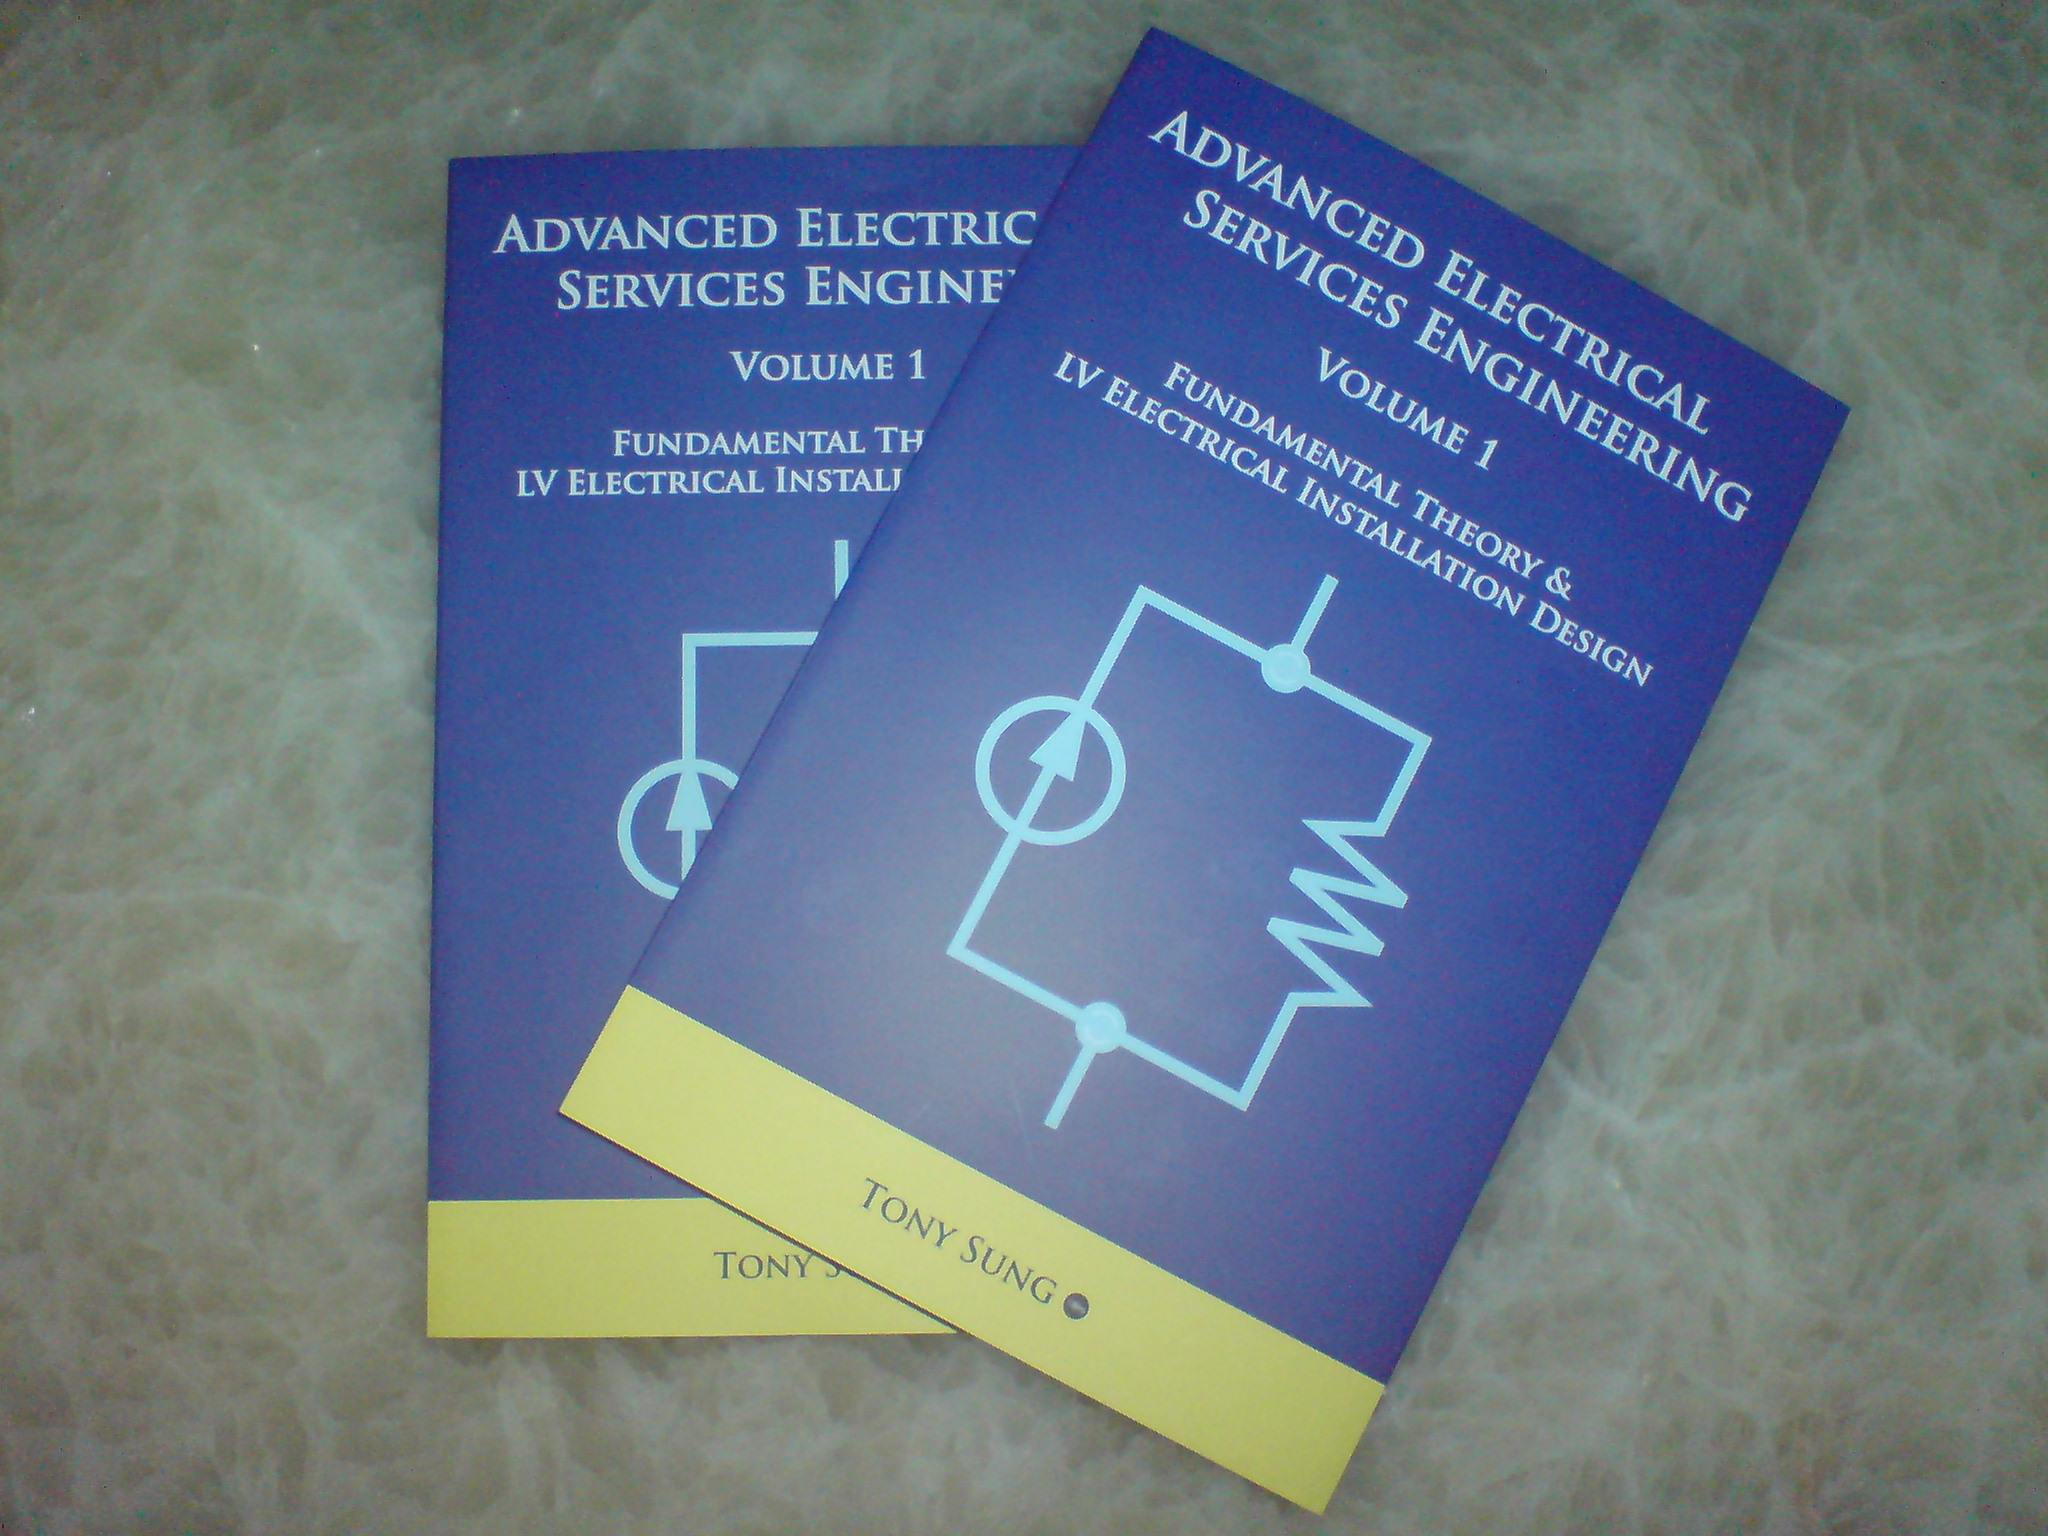 Electrical Engineering Textbook Pdf: Dr Tony Sung Sustainable Electrical Services Engineering Educational rh:dr-tonysung.com,Design